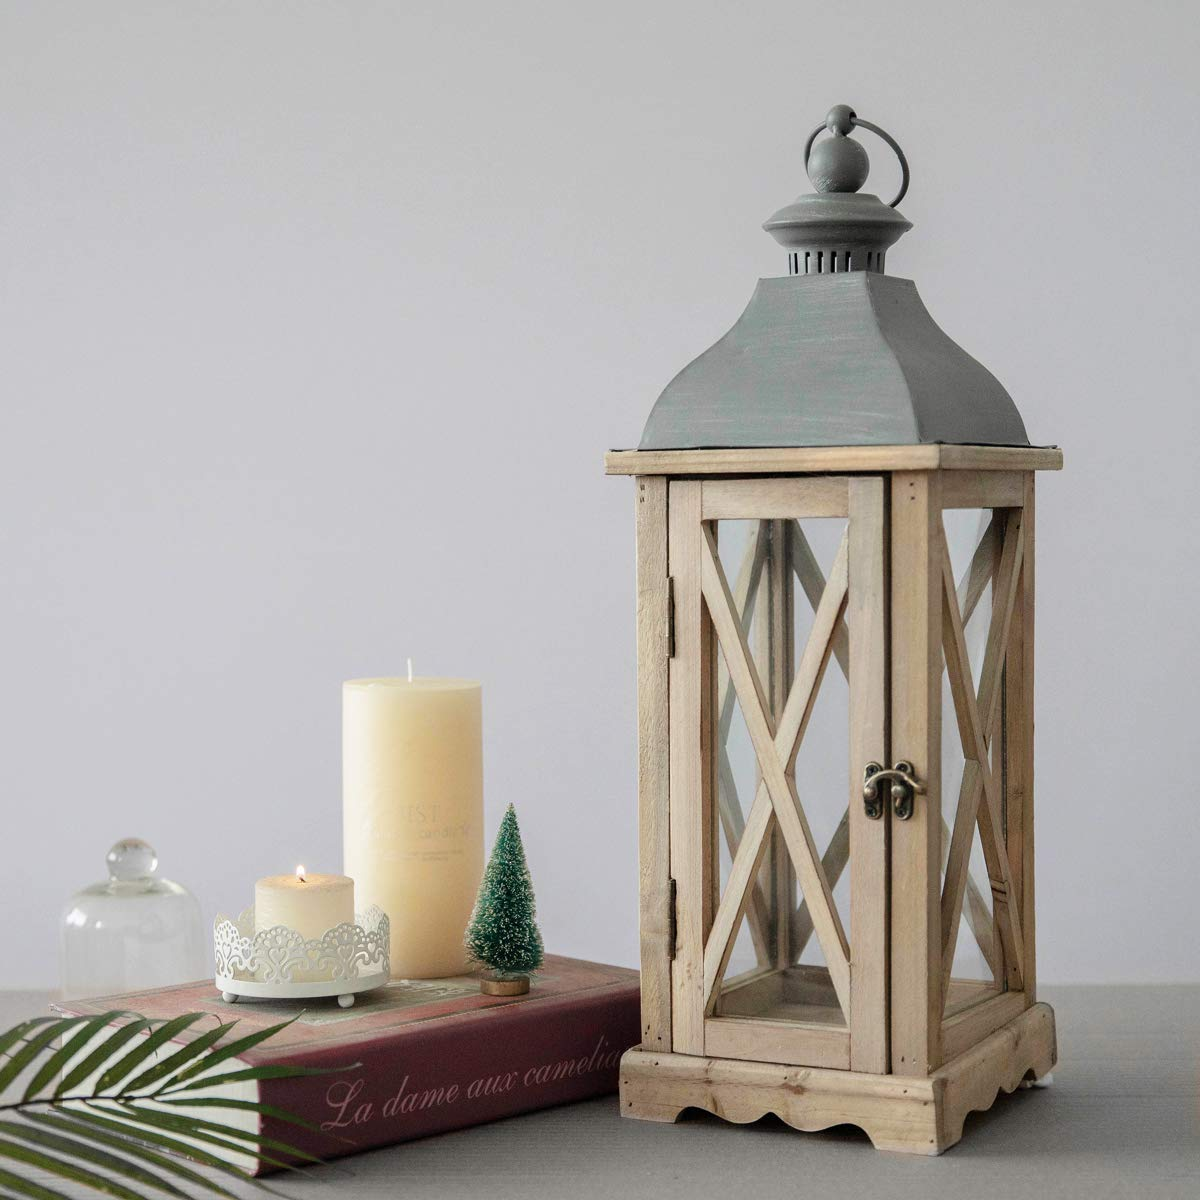 S.H. 6'' x 6'' x 20'' Wood Wooden Decorative Candle Lantern Vintage Rustic Large Hanging Candle Holder for Indoor Outdoor Use